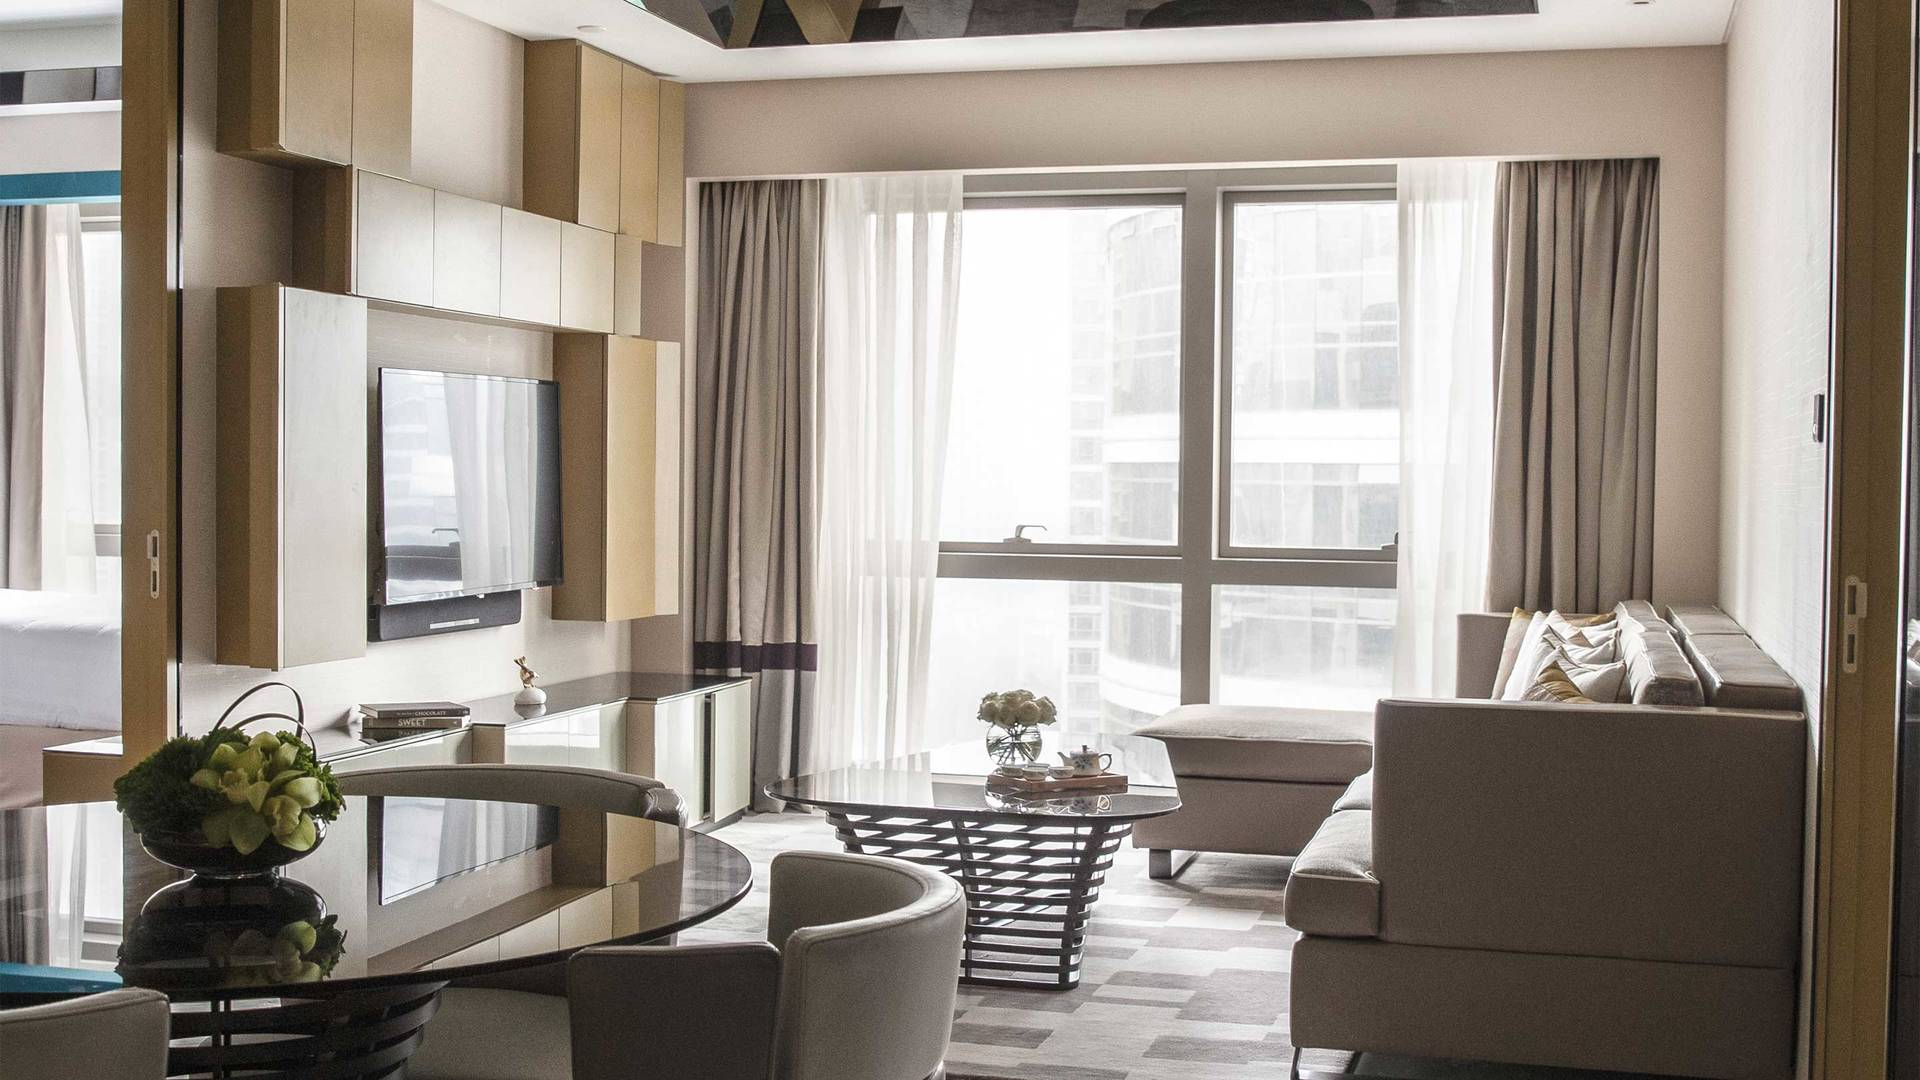 16-9 JUMEIRAH LIVING GUANGZHOU Contemporary 1 bed room suite living room 02